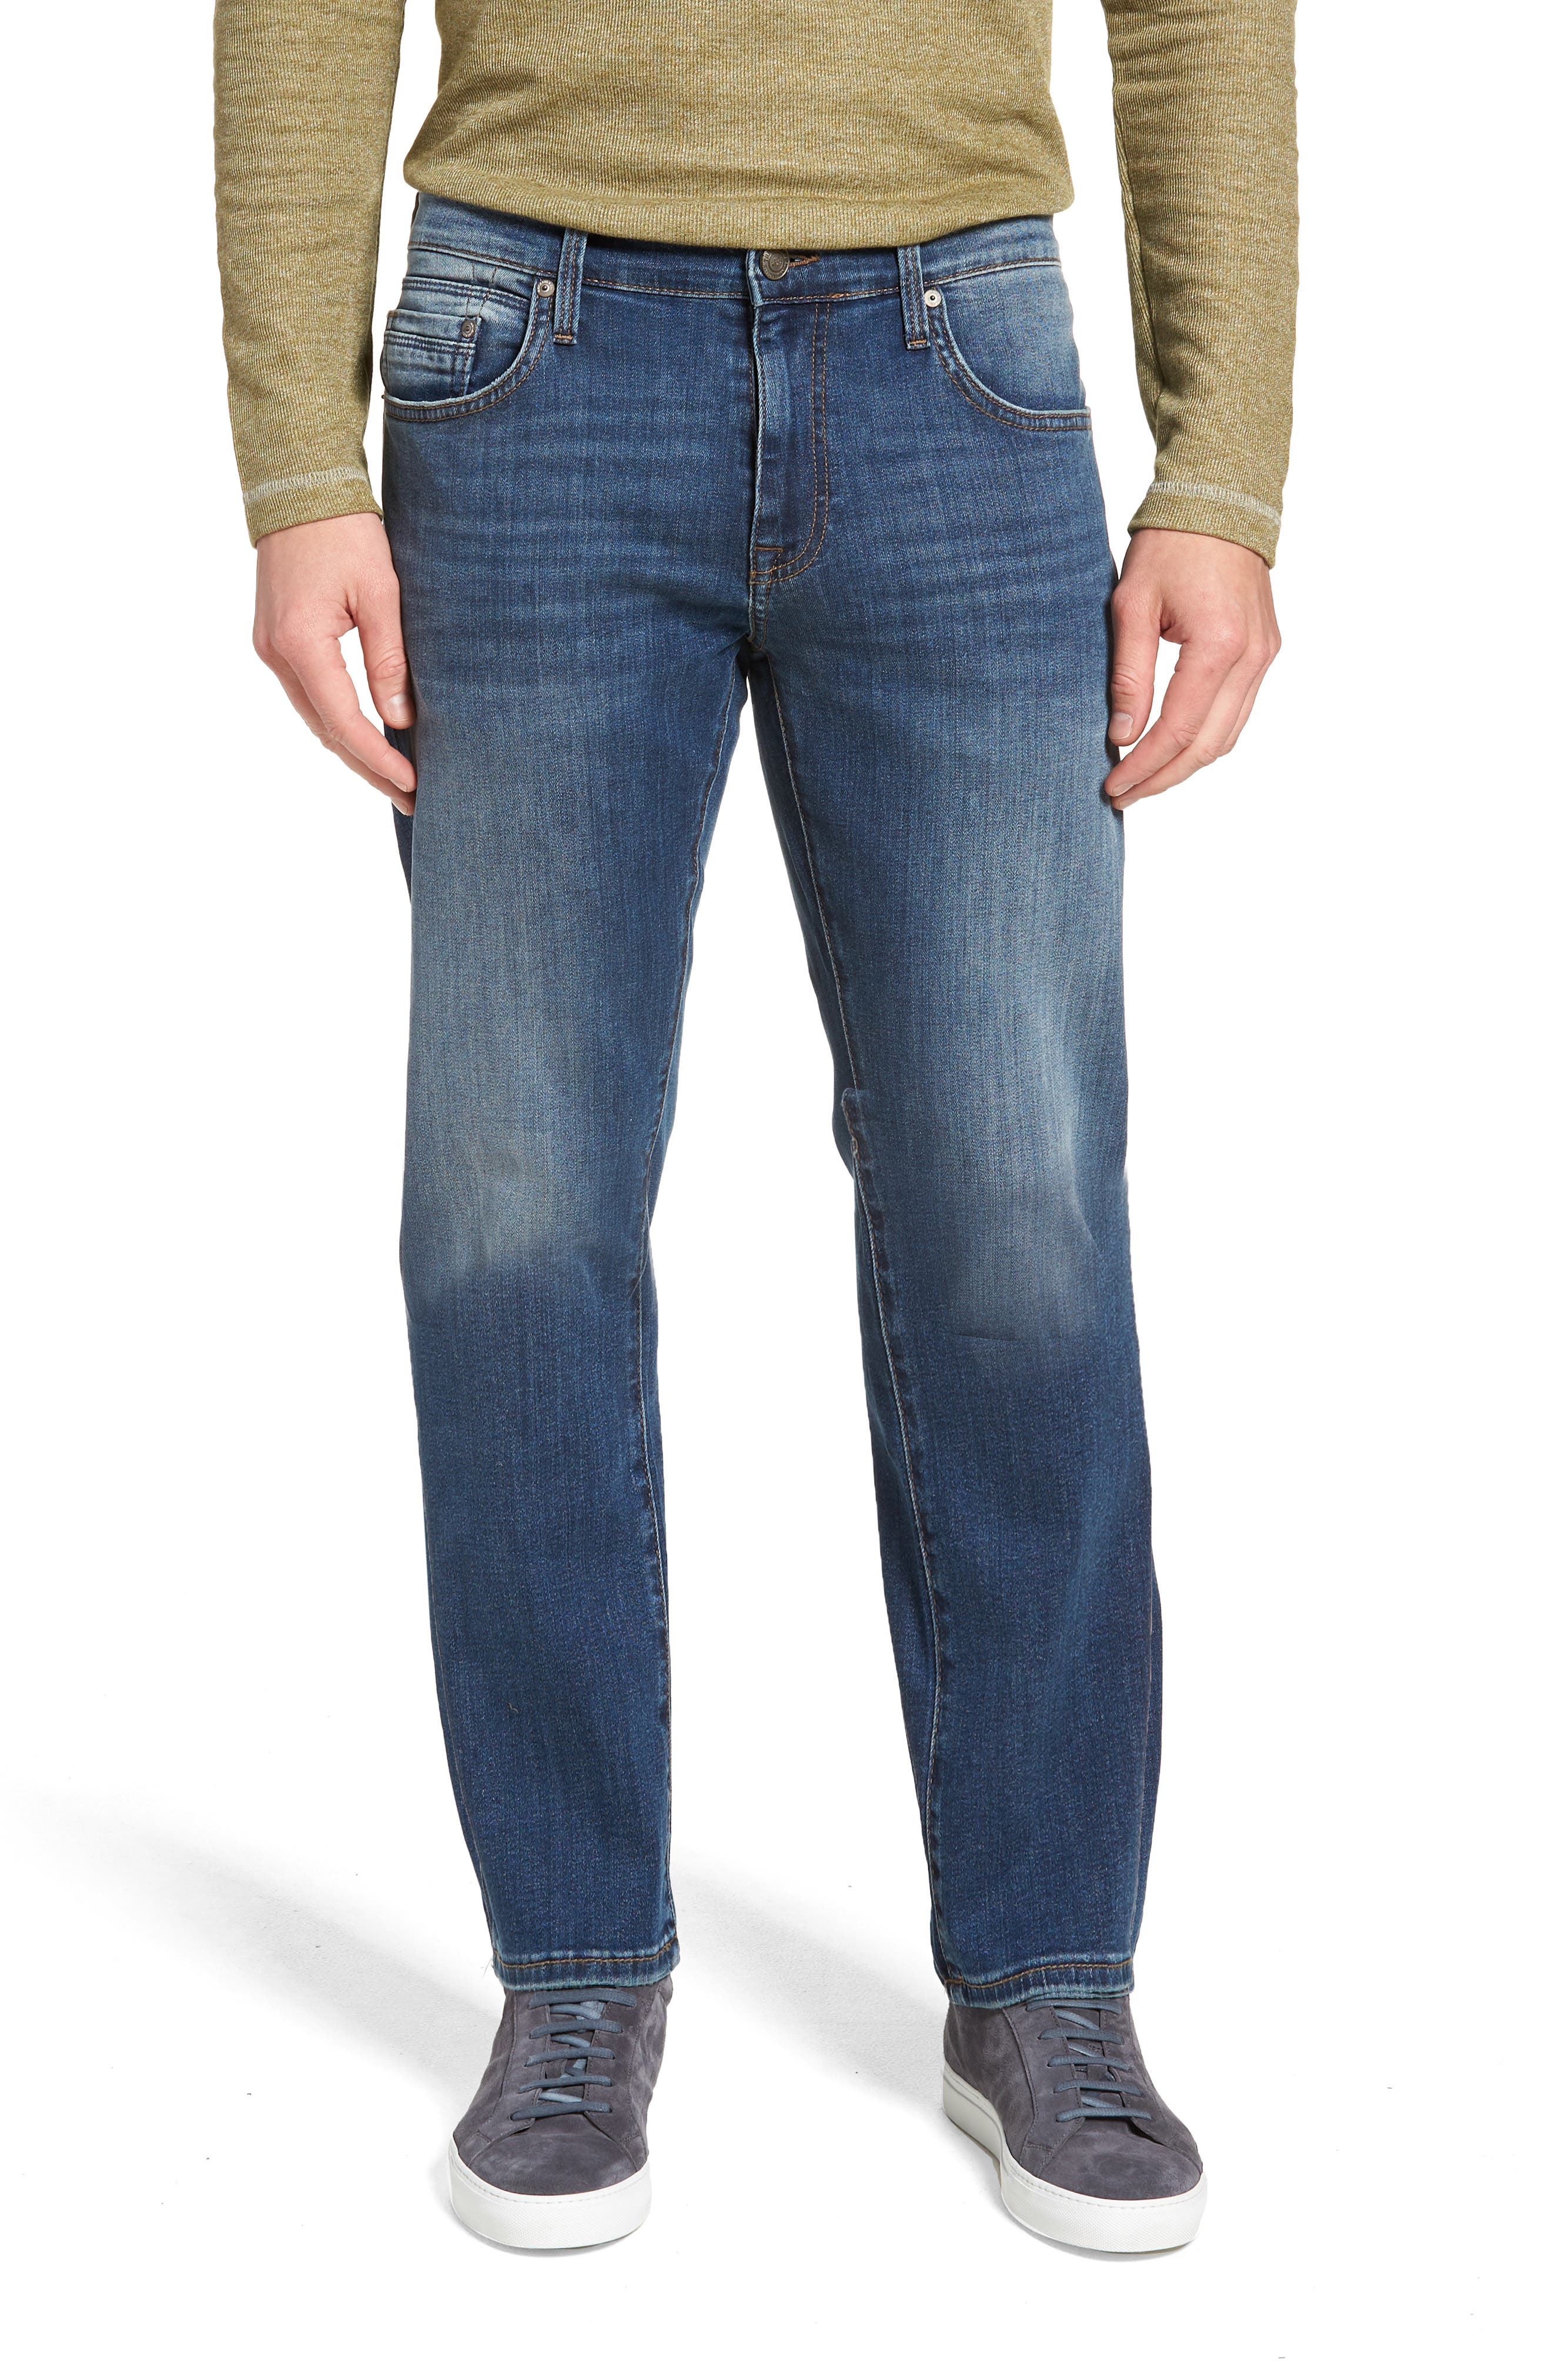 Zach Straight Leg Jeans,                         Main,                         color, MID USED CAPITOL HILL